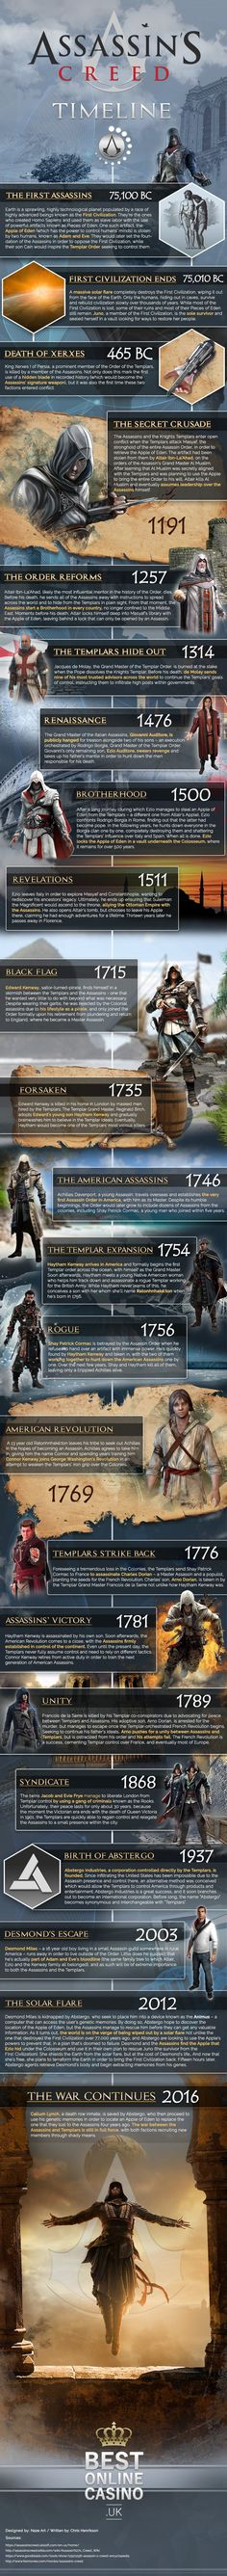 Complete Assassin's Creed timeline So far (source in comments) Assassins Creed Quotes, Assassins Creed Odyssey, Assassins Creed Cosplay, Assassins Creed Origins, Asesins Creed, All Assassin's Creed, Life Is Strange, Assassin's Creed History, Assassin's Creed Wallpaper